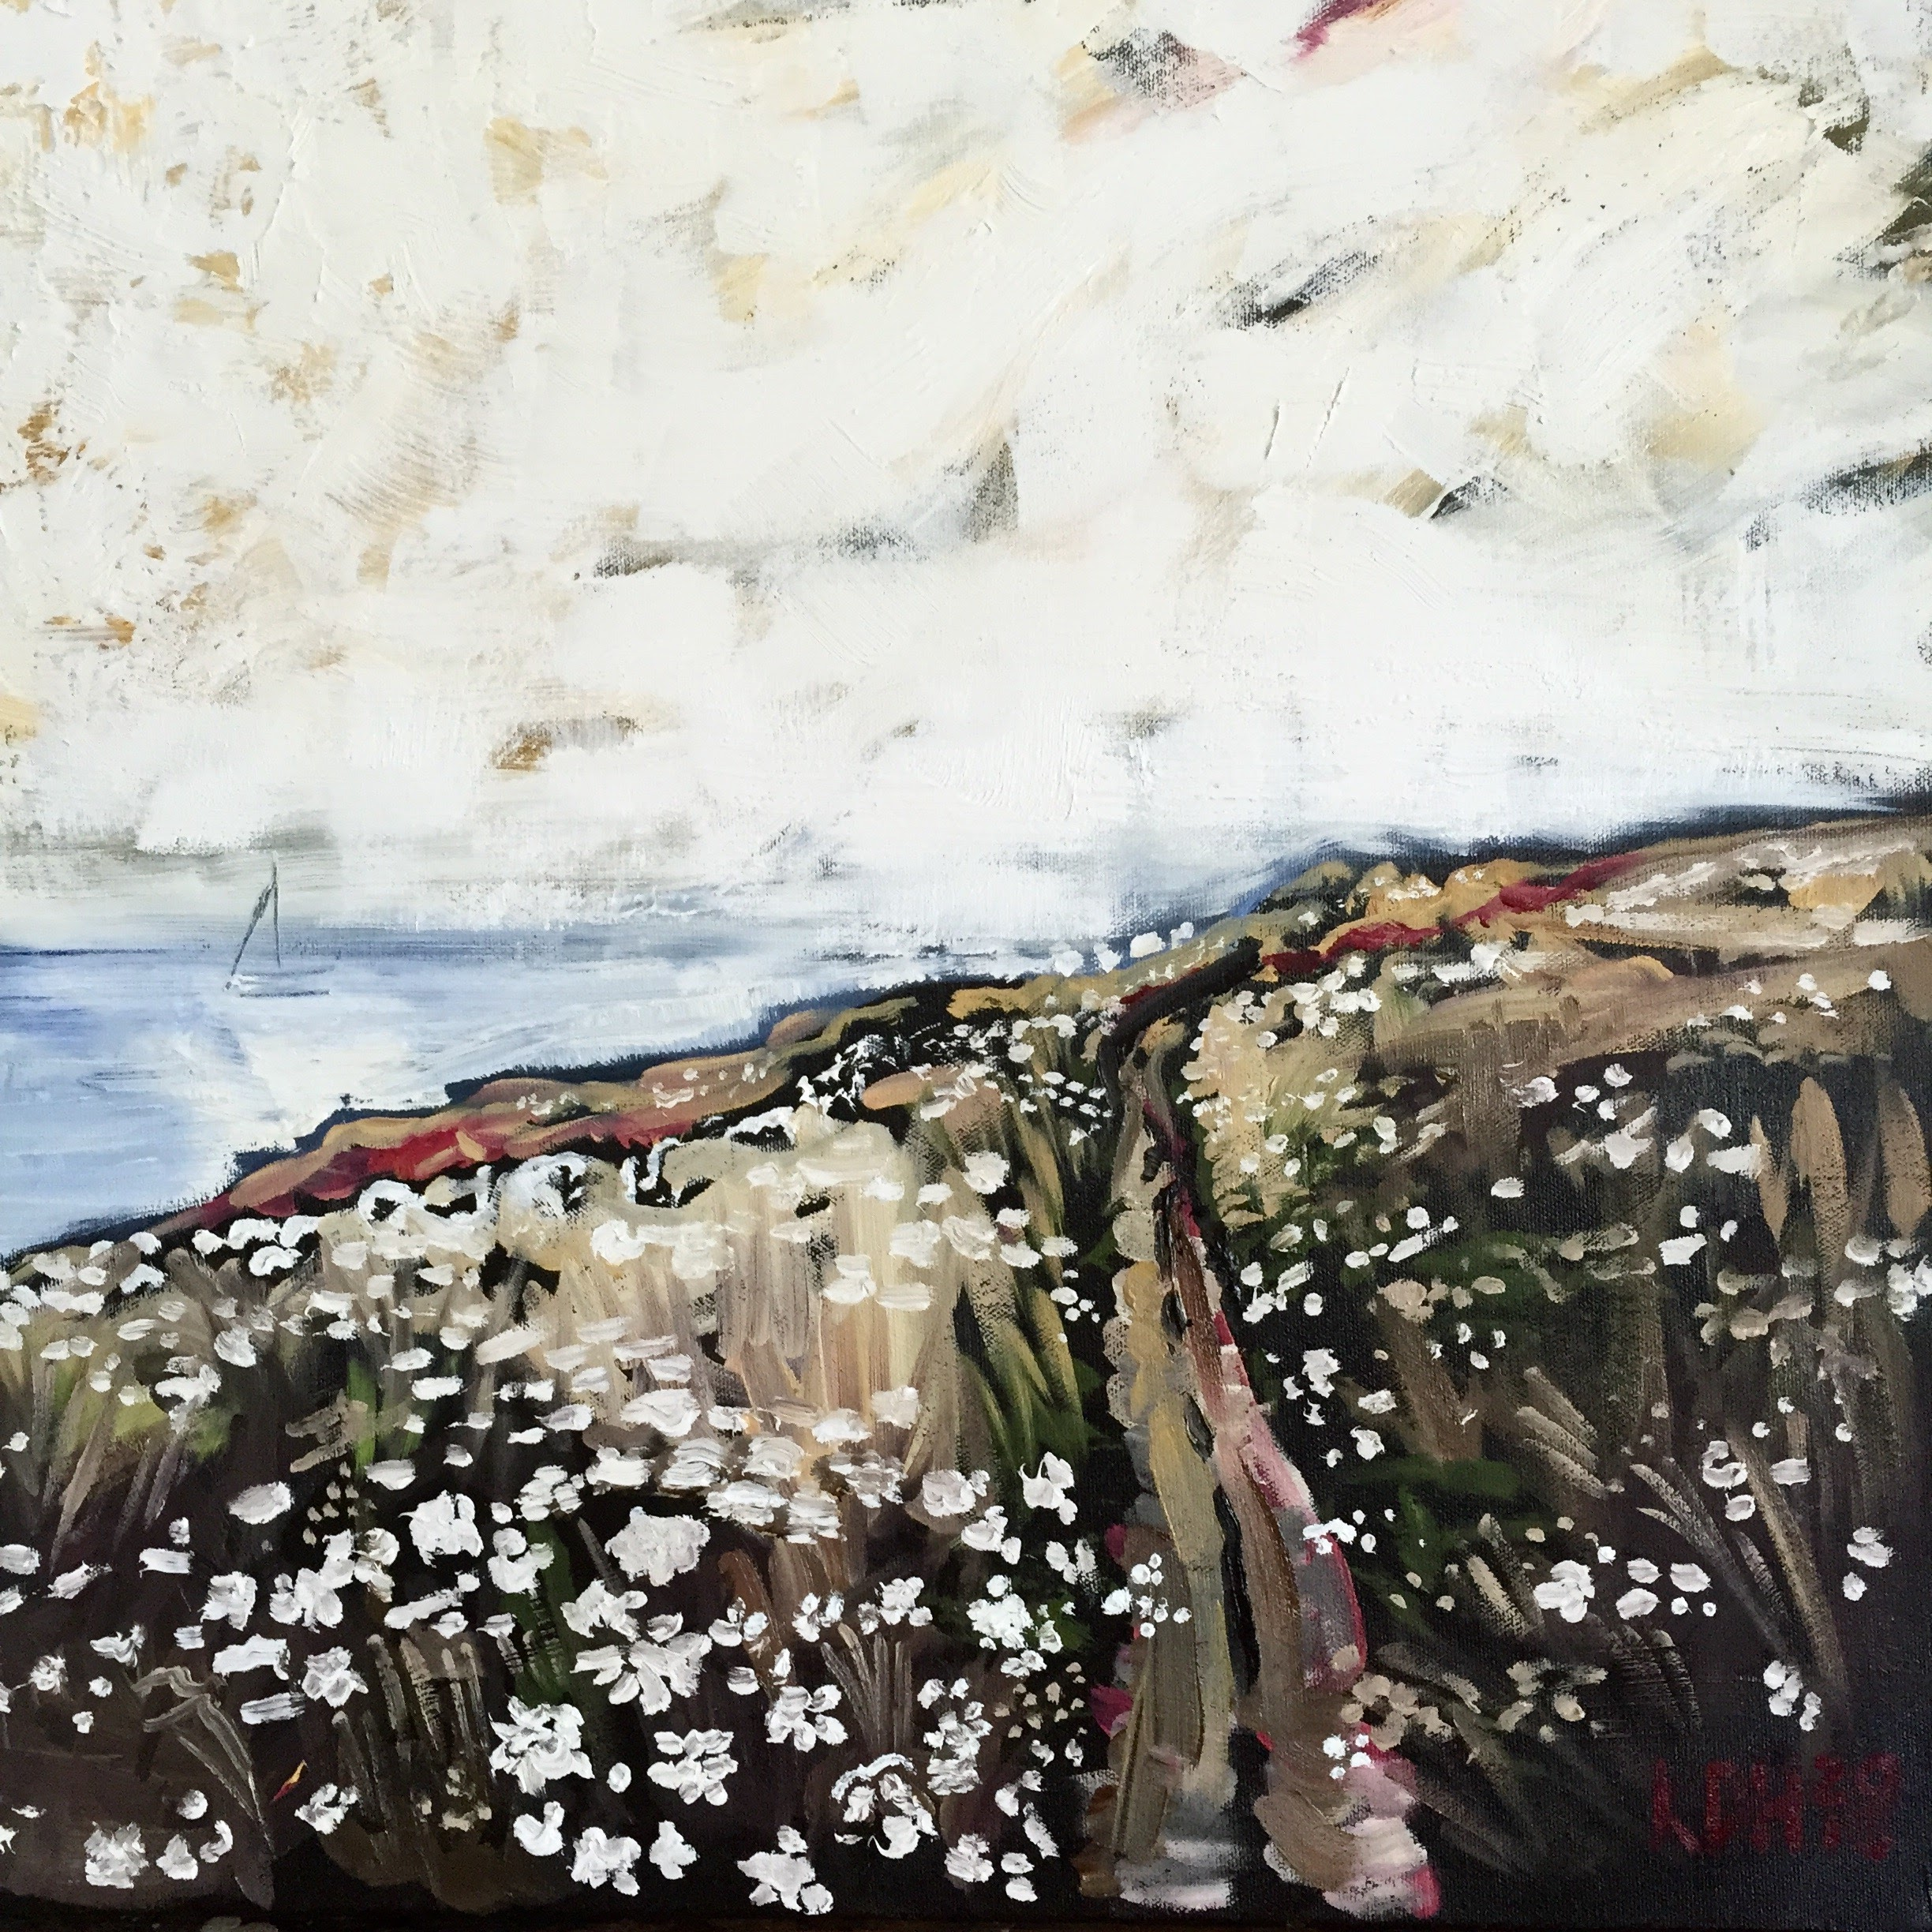 Sky & Field No. 1 [oil on canvas]